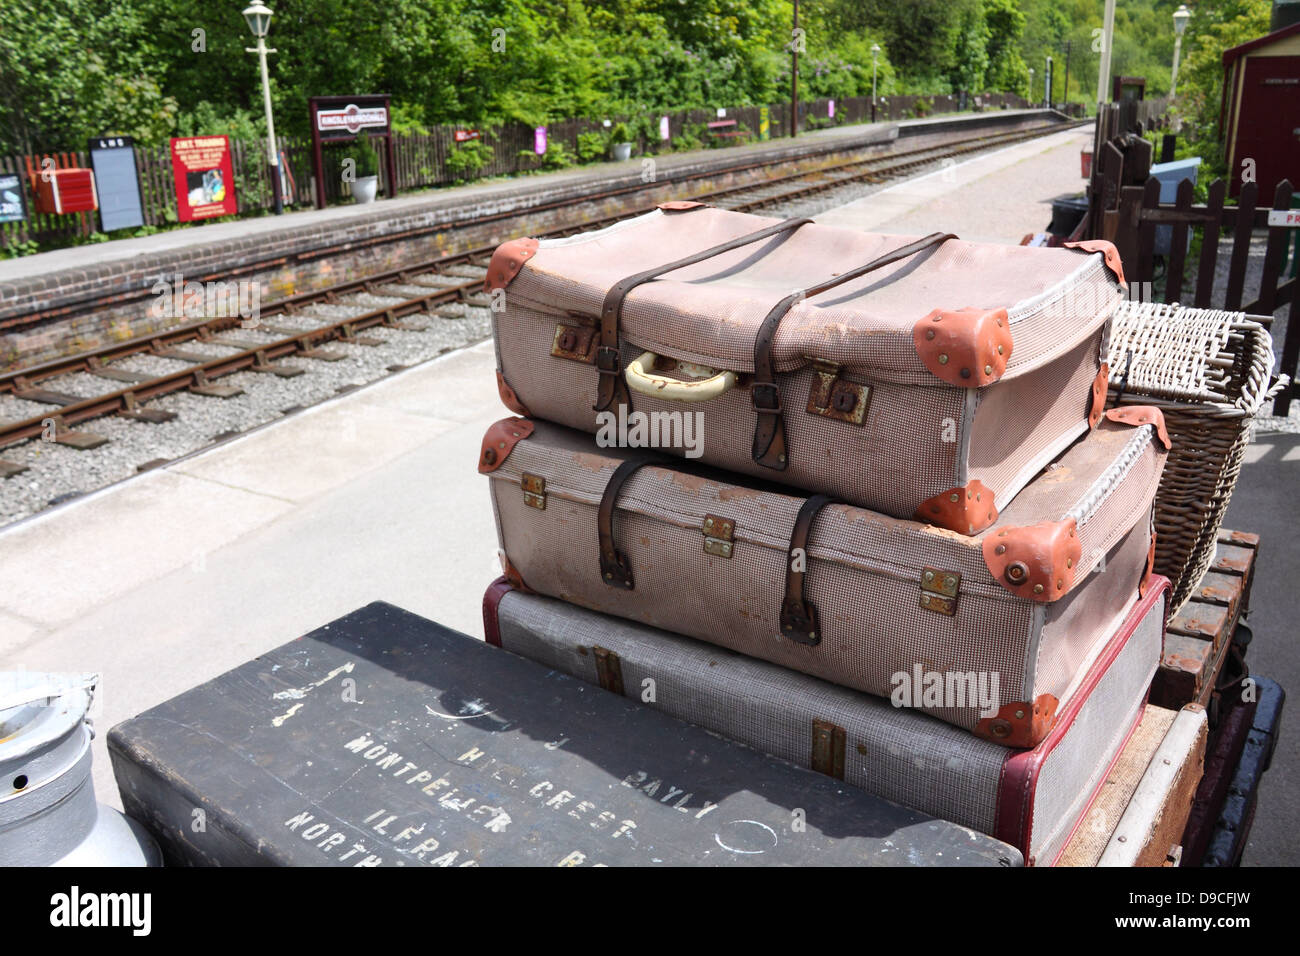 Retro luggage on the platform at Kingsley and Froghall railway station, Staffordshire, England. - Stock Image